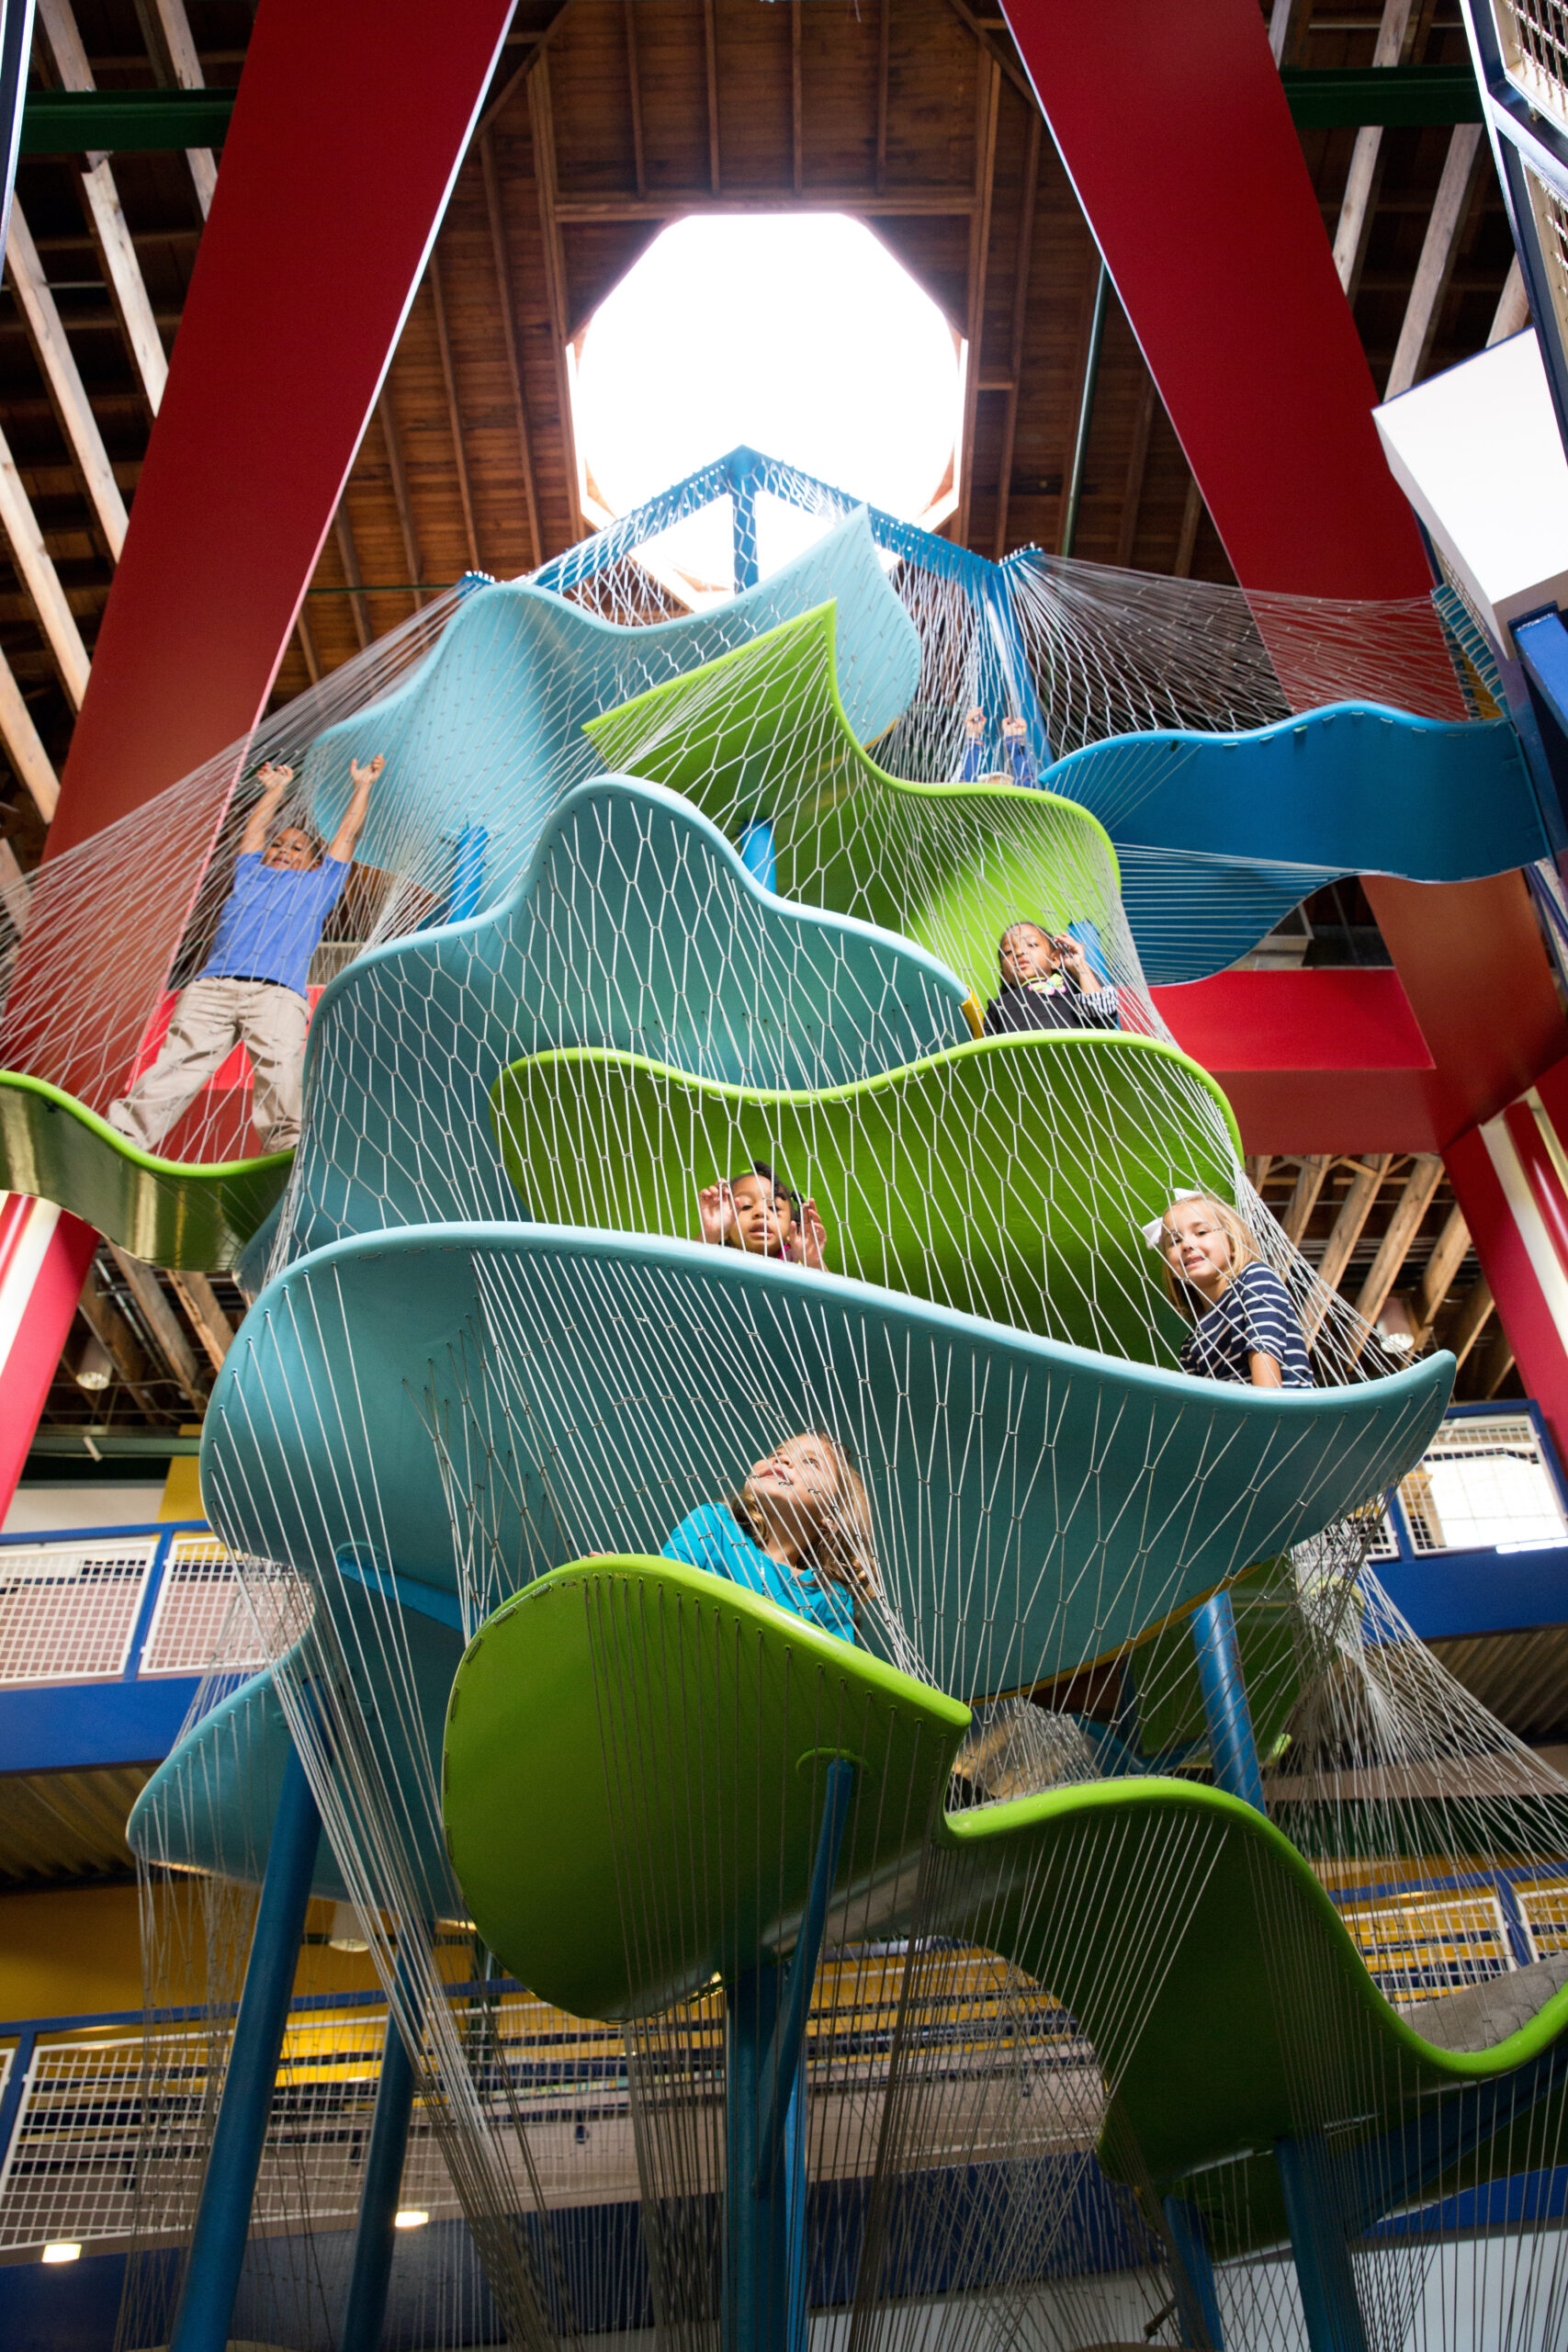 Fun with kids in Biloxi discovers amazing staircases at Lynn Meadows Discovery Center.